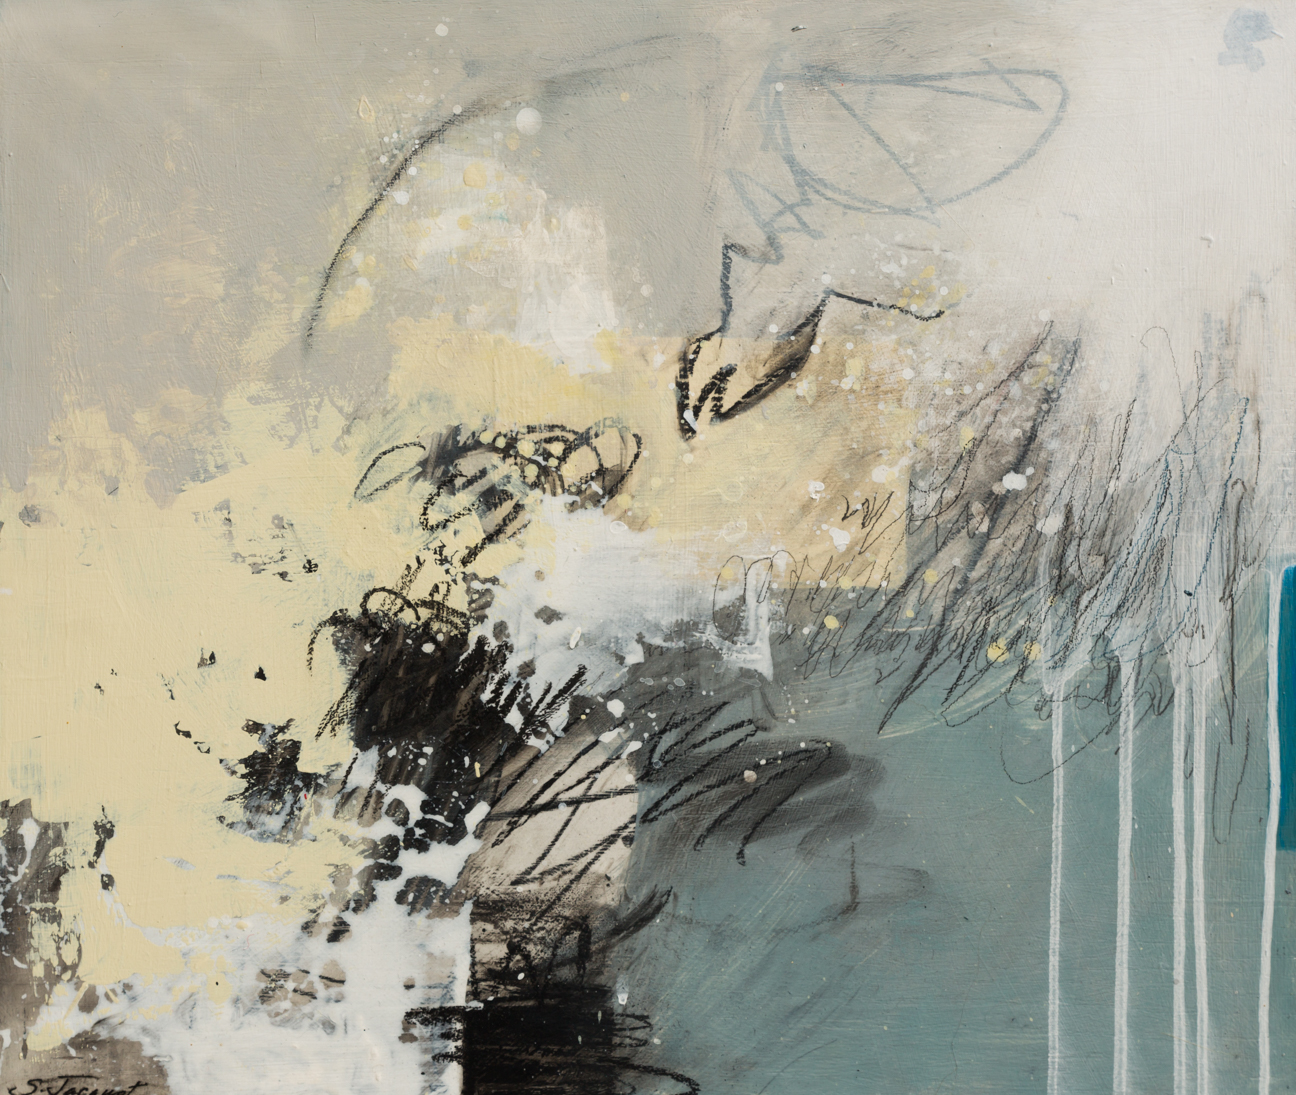 "Comes and goes Acrylic, graphite, charcoal on wood panel 17LWP104 20"" x 24"""